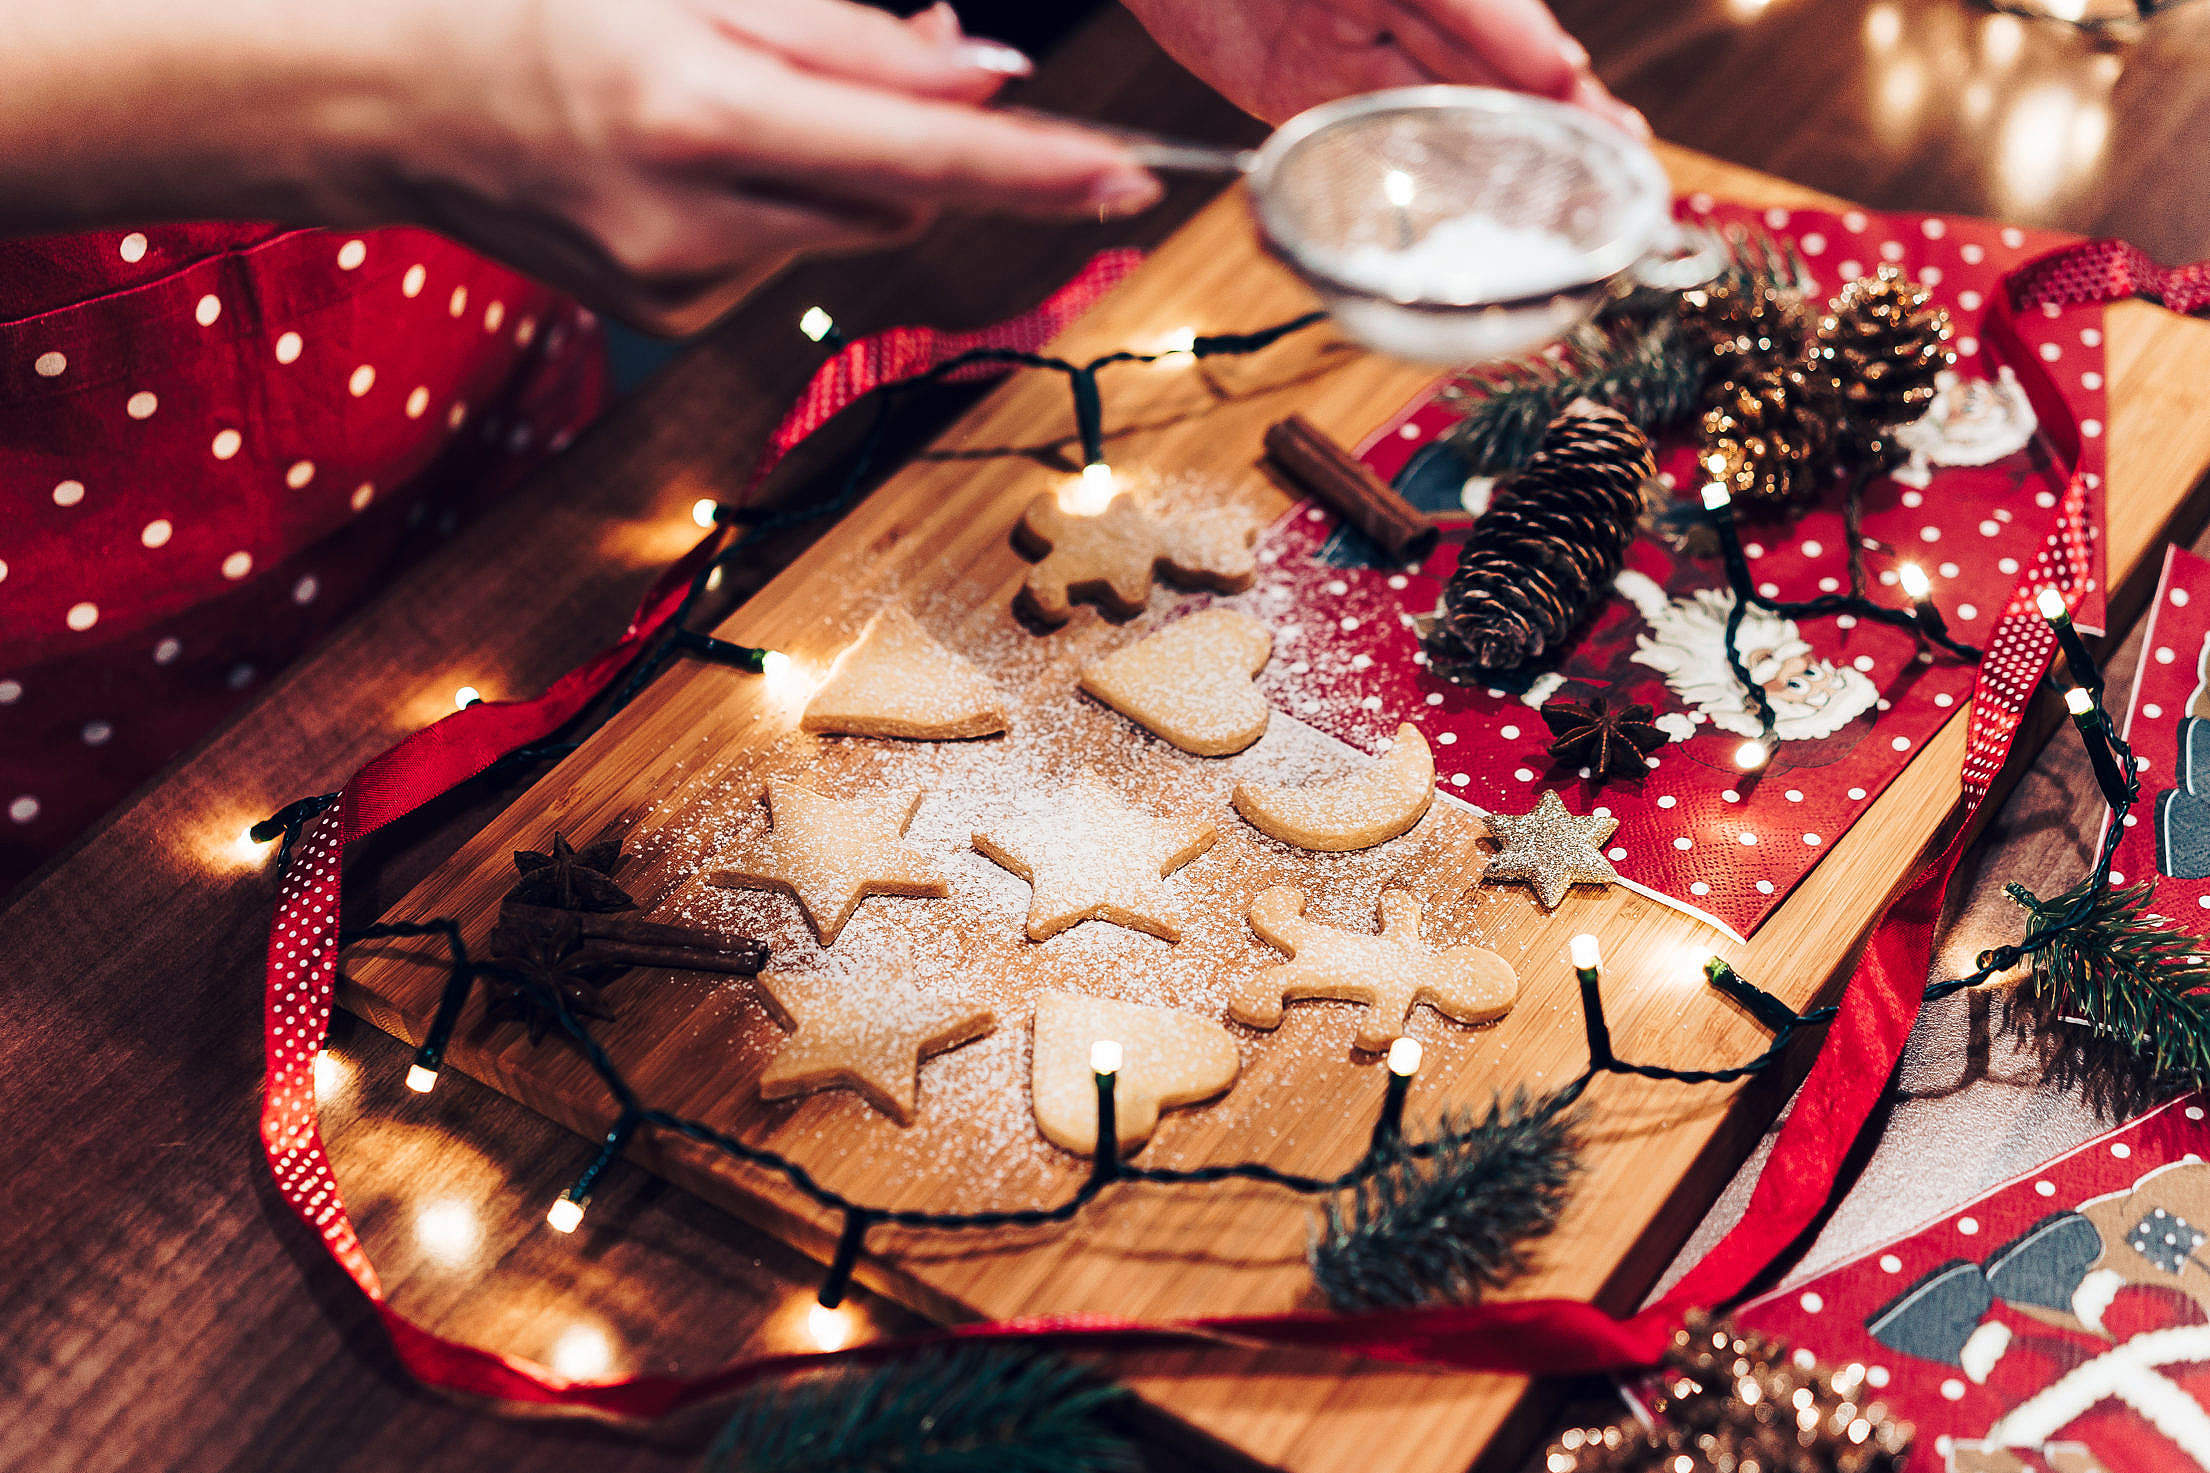 Adding Sugar on Christmas Cookies Free Stock Photo